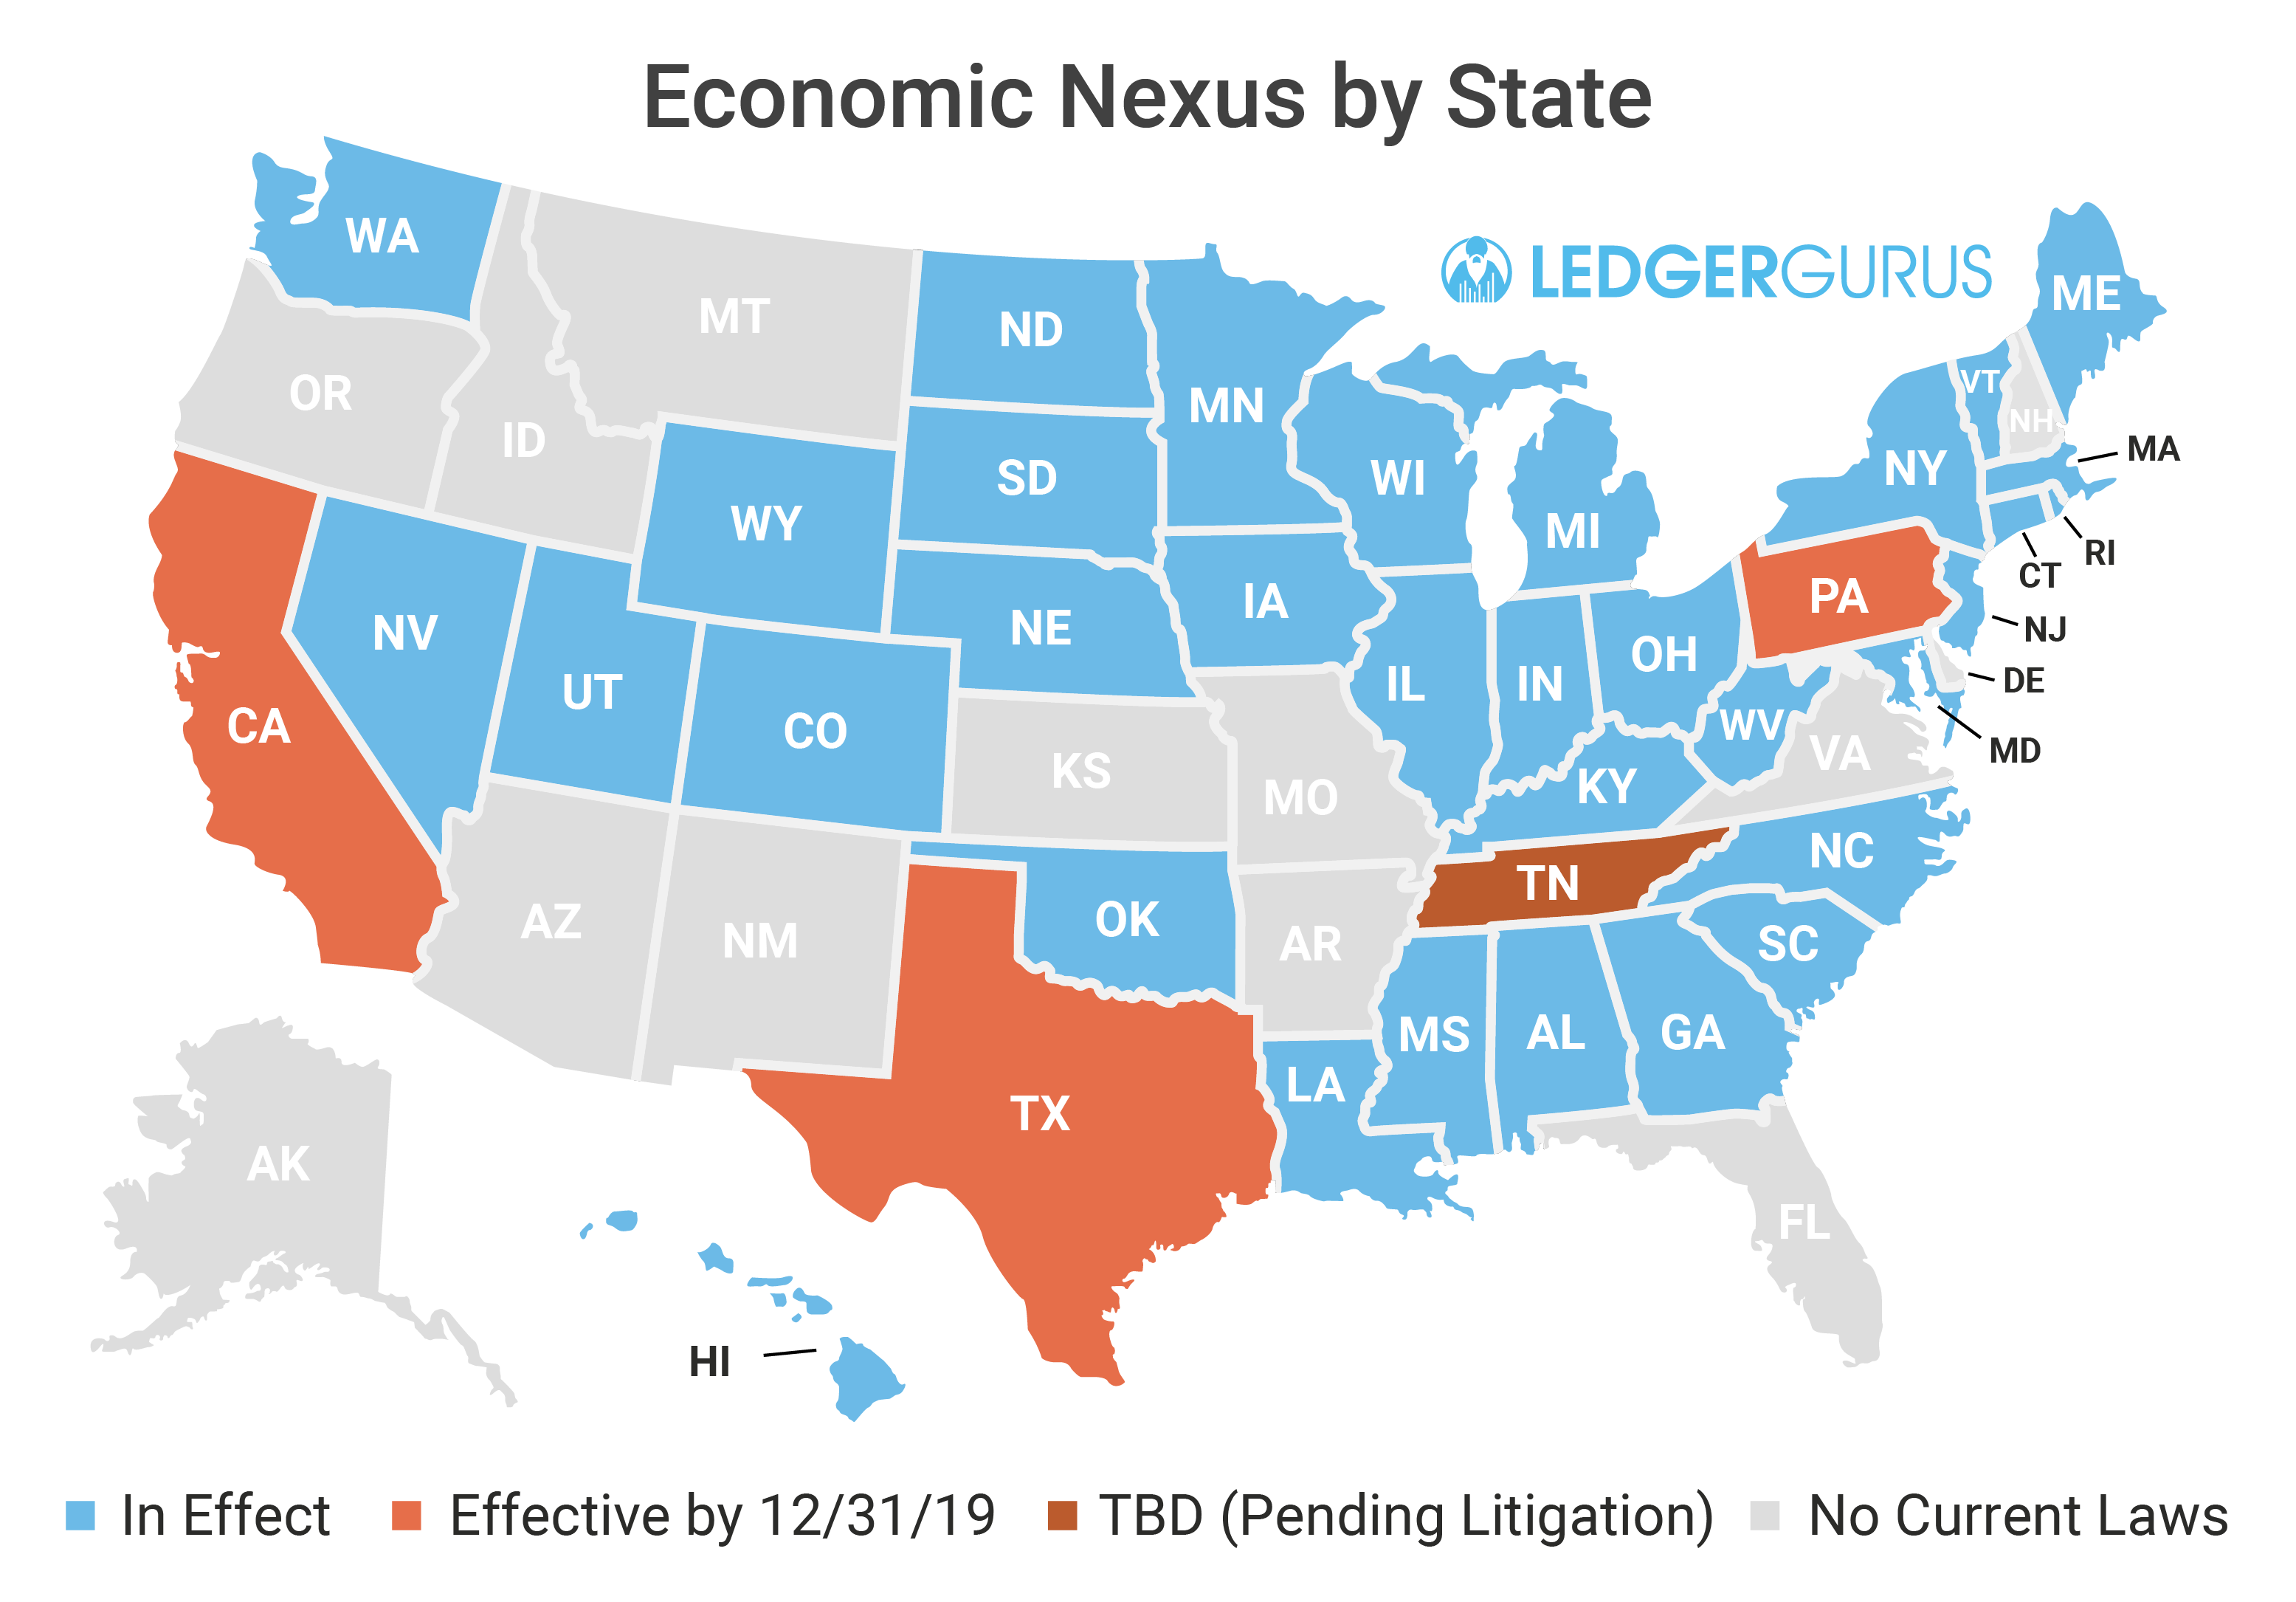 Economic Nexus by State